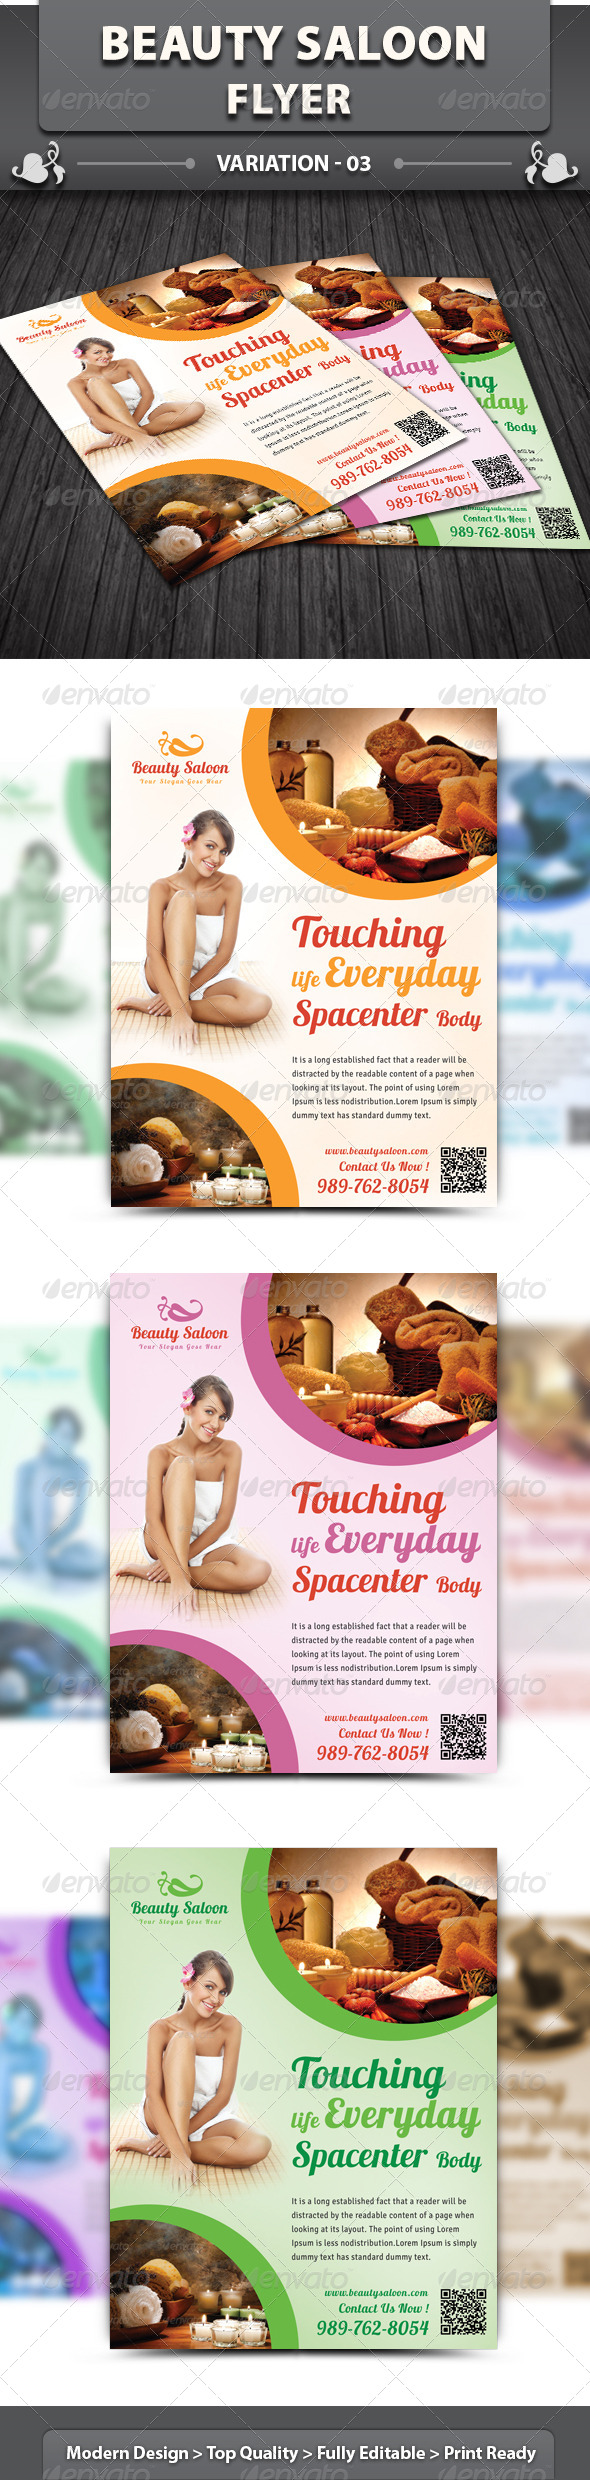 GraphicRiver Beauty Saloon Flyer 5614566